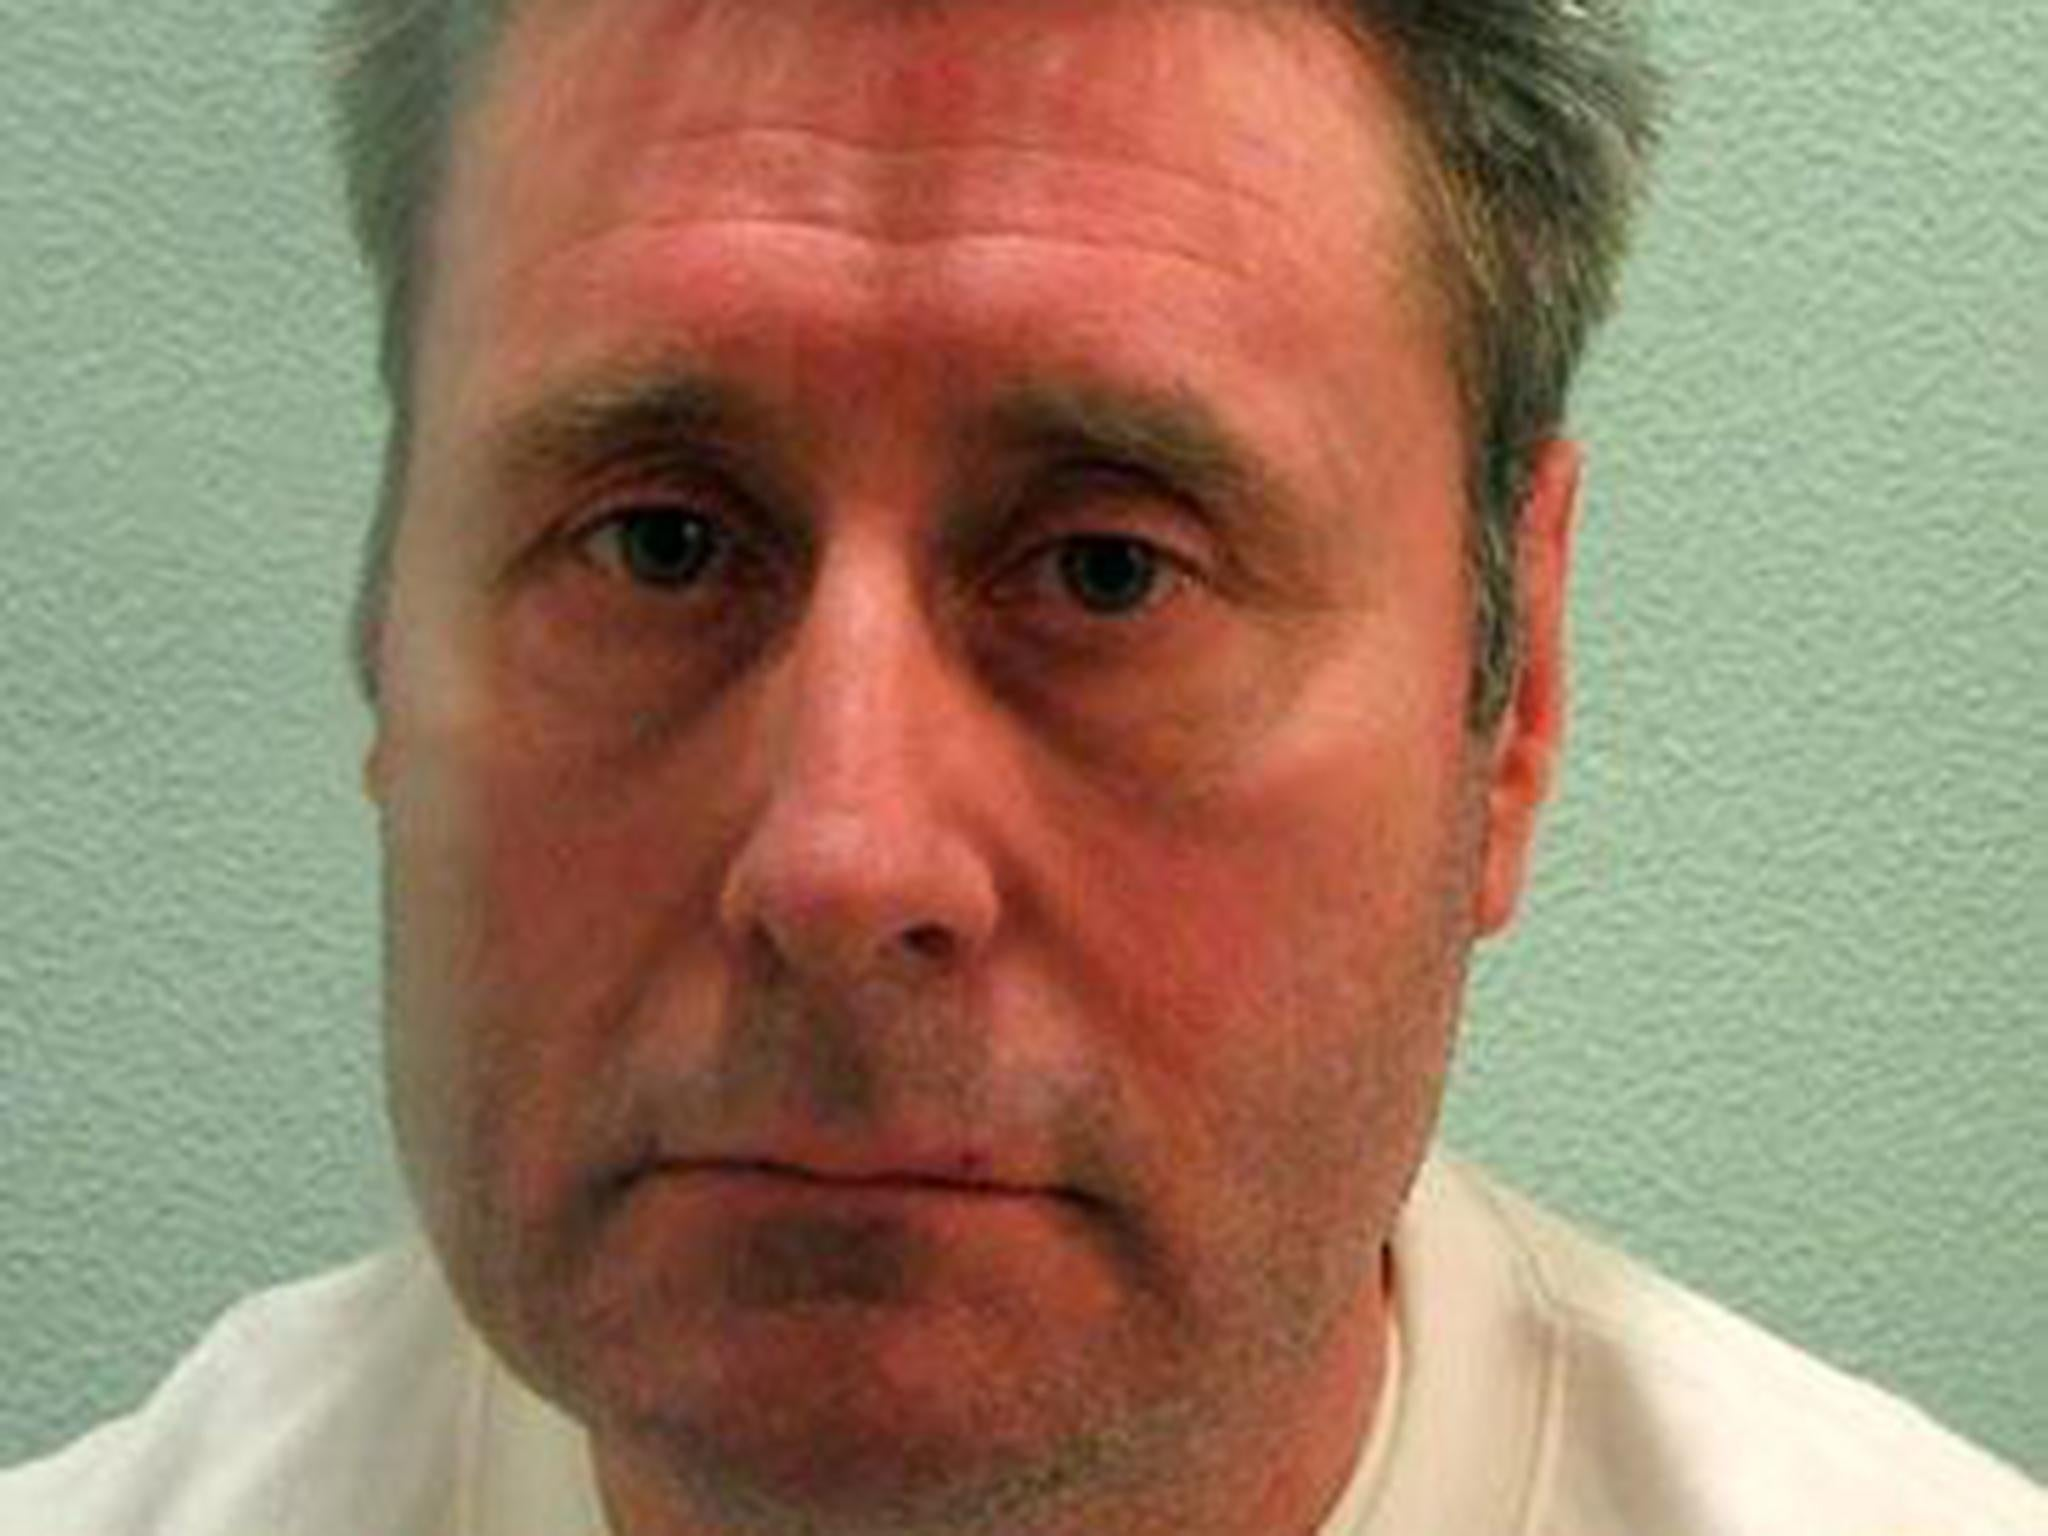 John Worboys' victims 'living in fear' ahead of rapist's release